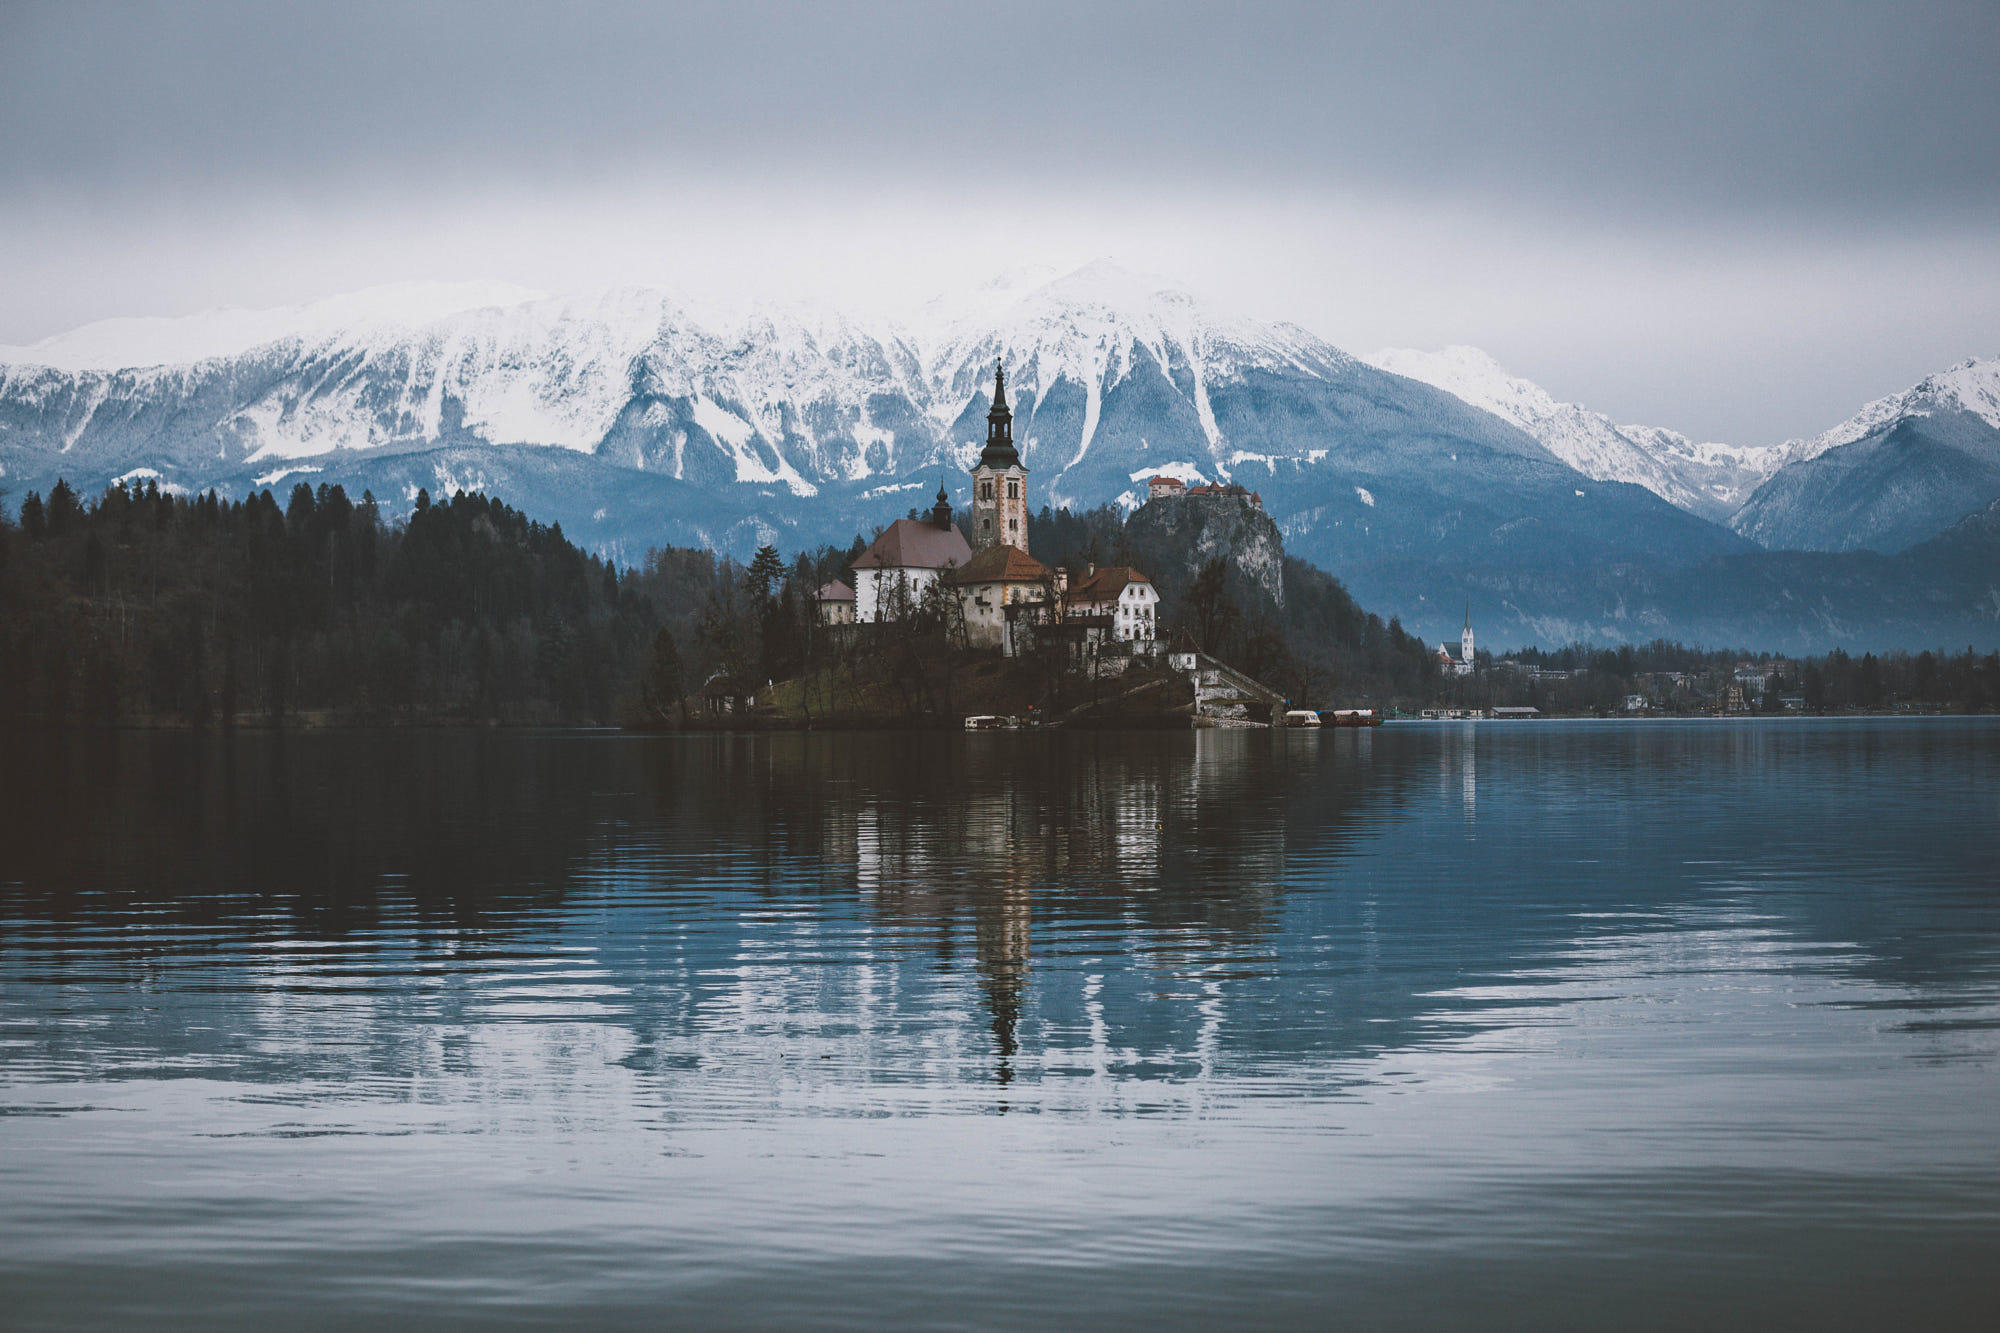 Lake bled on a calm winter day.